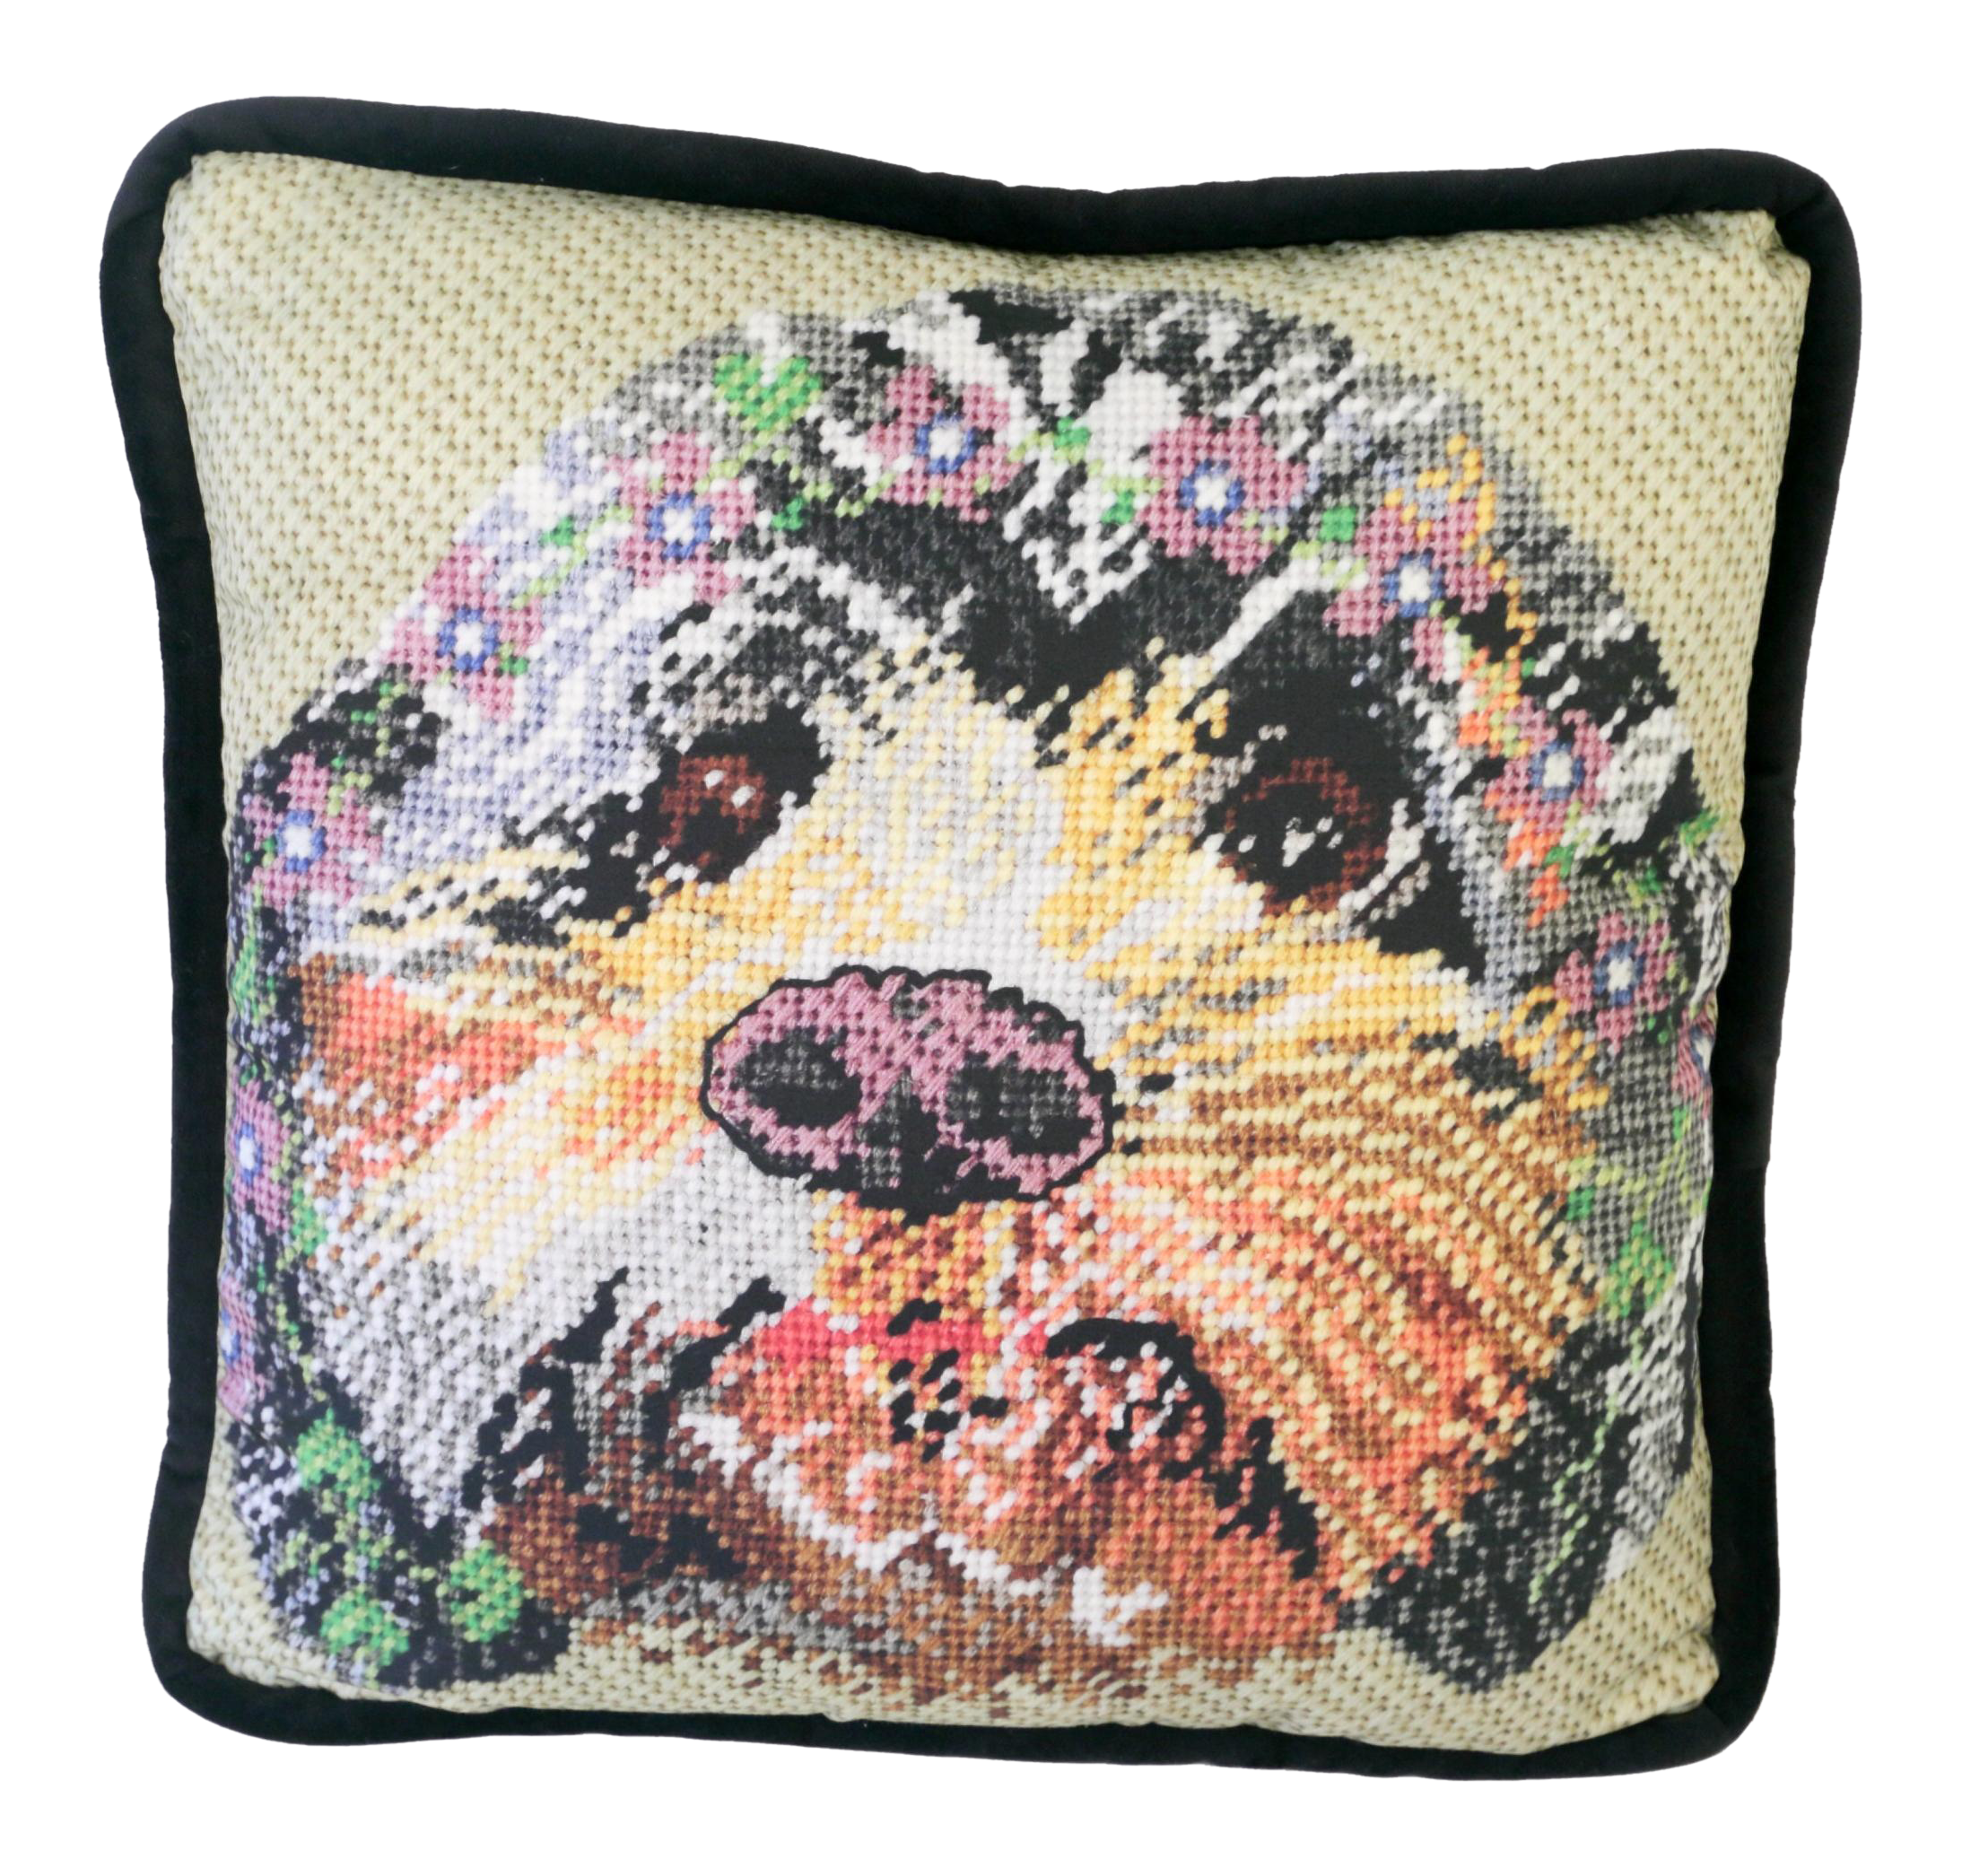 Animal Print Needlepoint Pillows : Printed Needlepoint Dog Pillow, Handcrafted Chairish